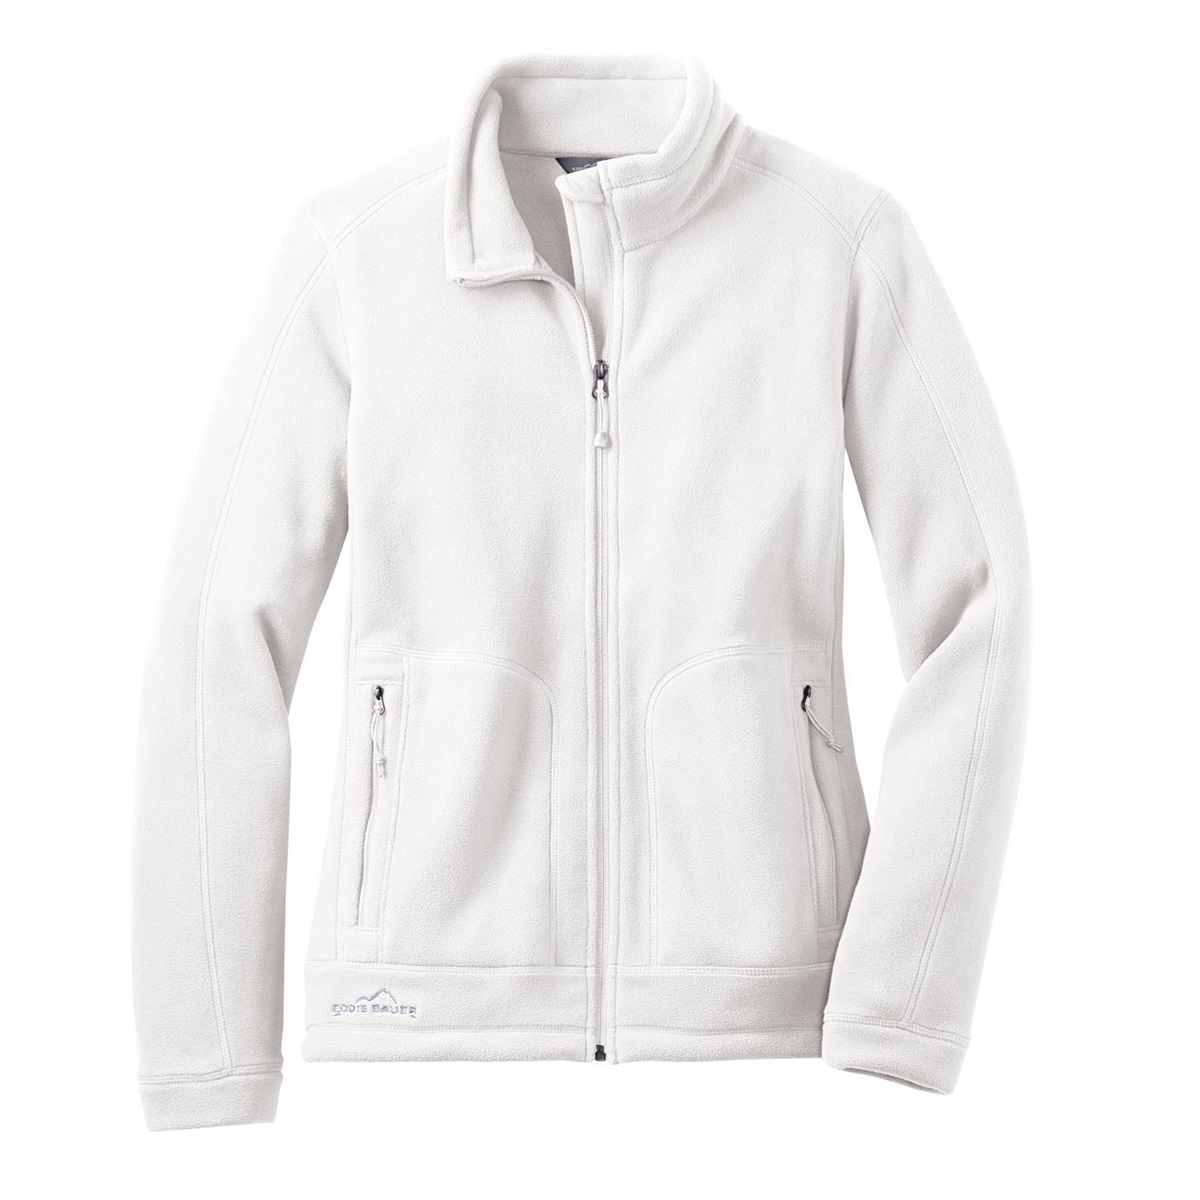 Eddie Bauer EB231 Ladies Wind Resistant Full-Zip Fleece Jacket ...